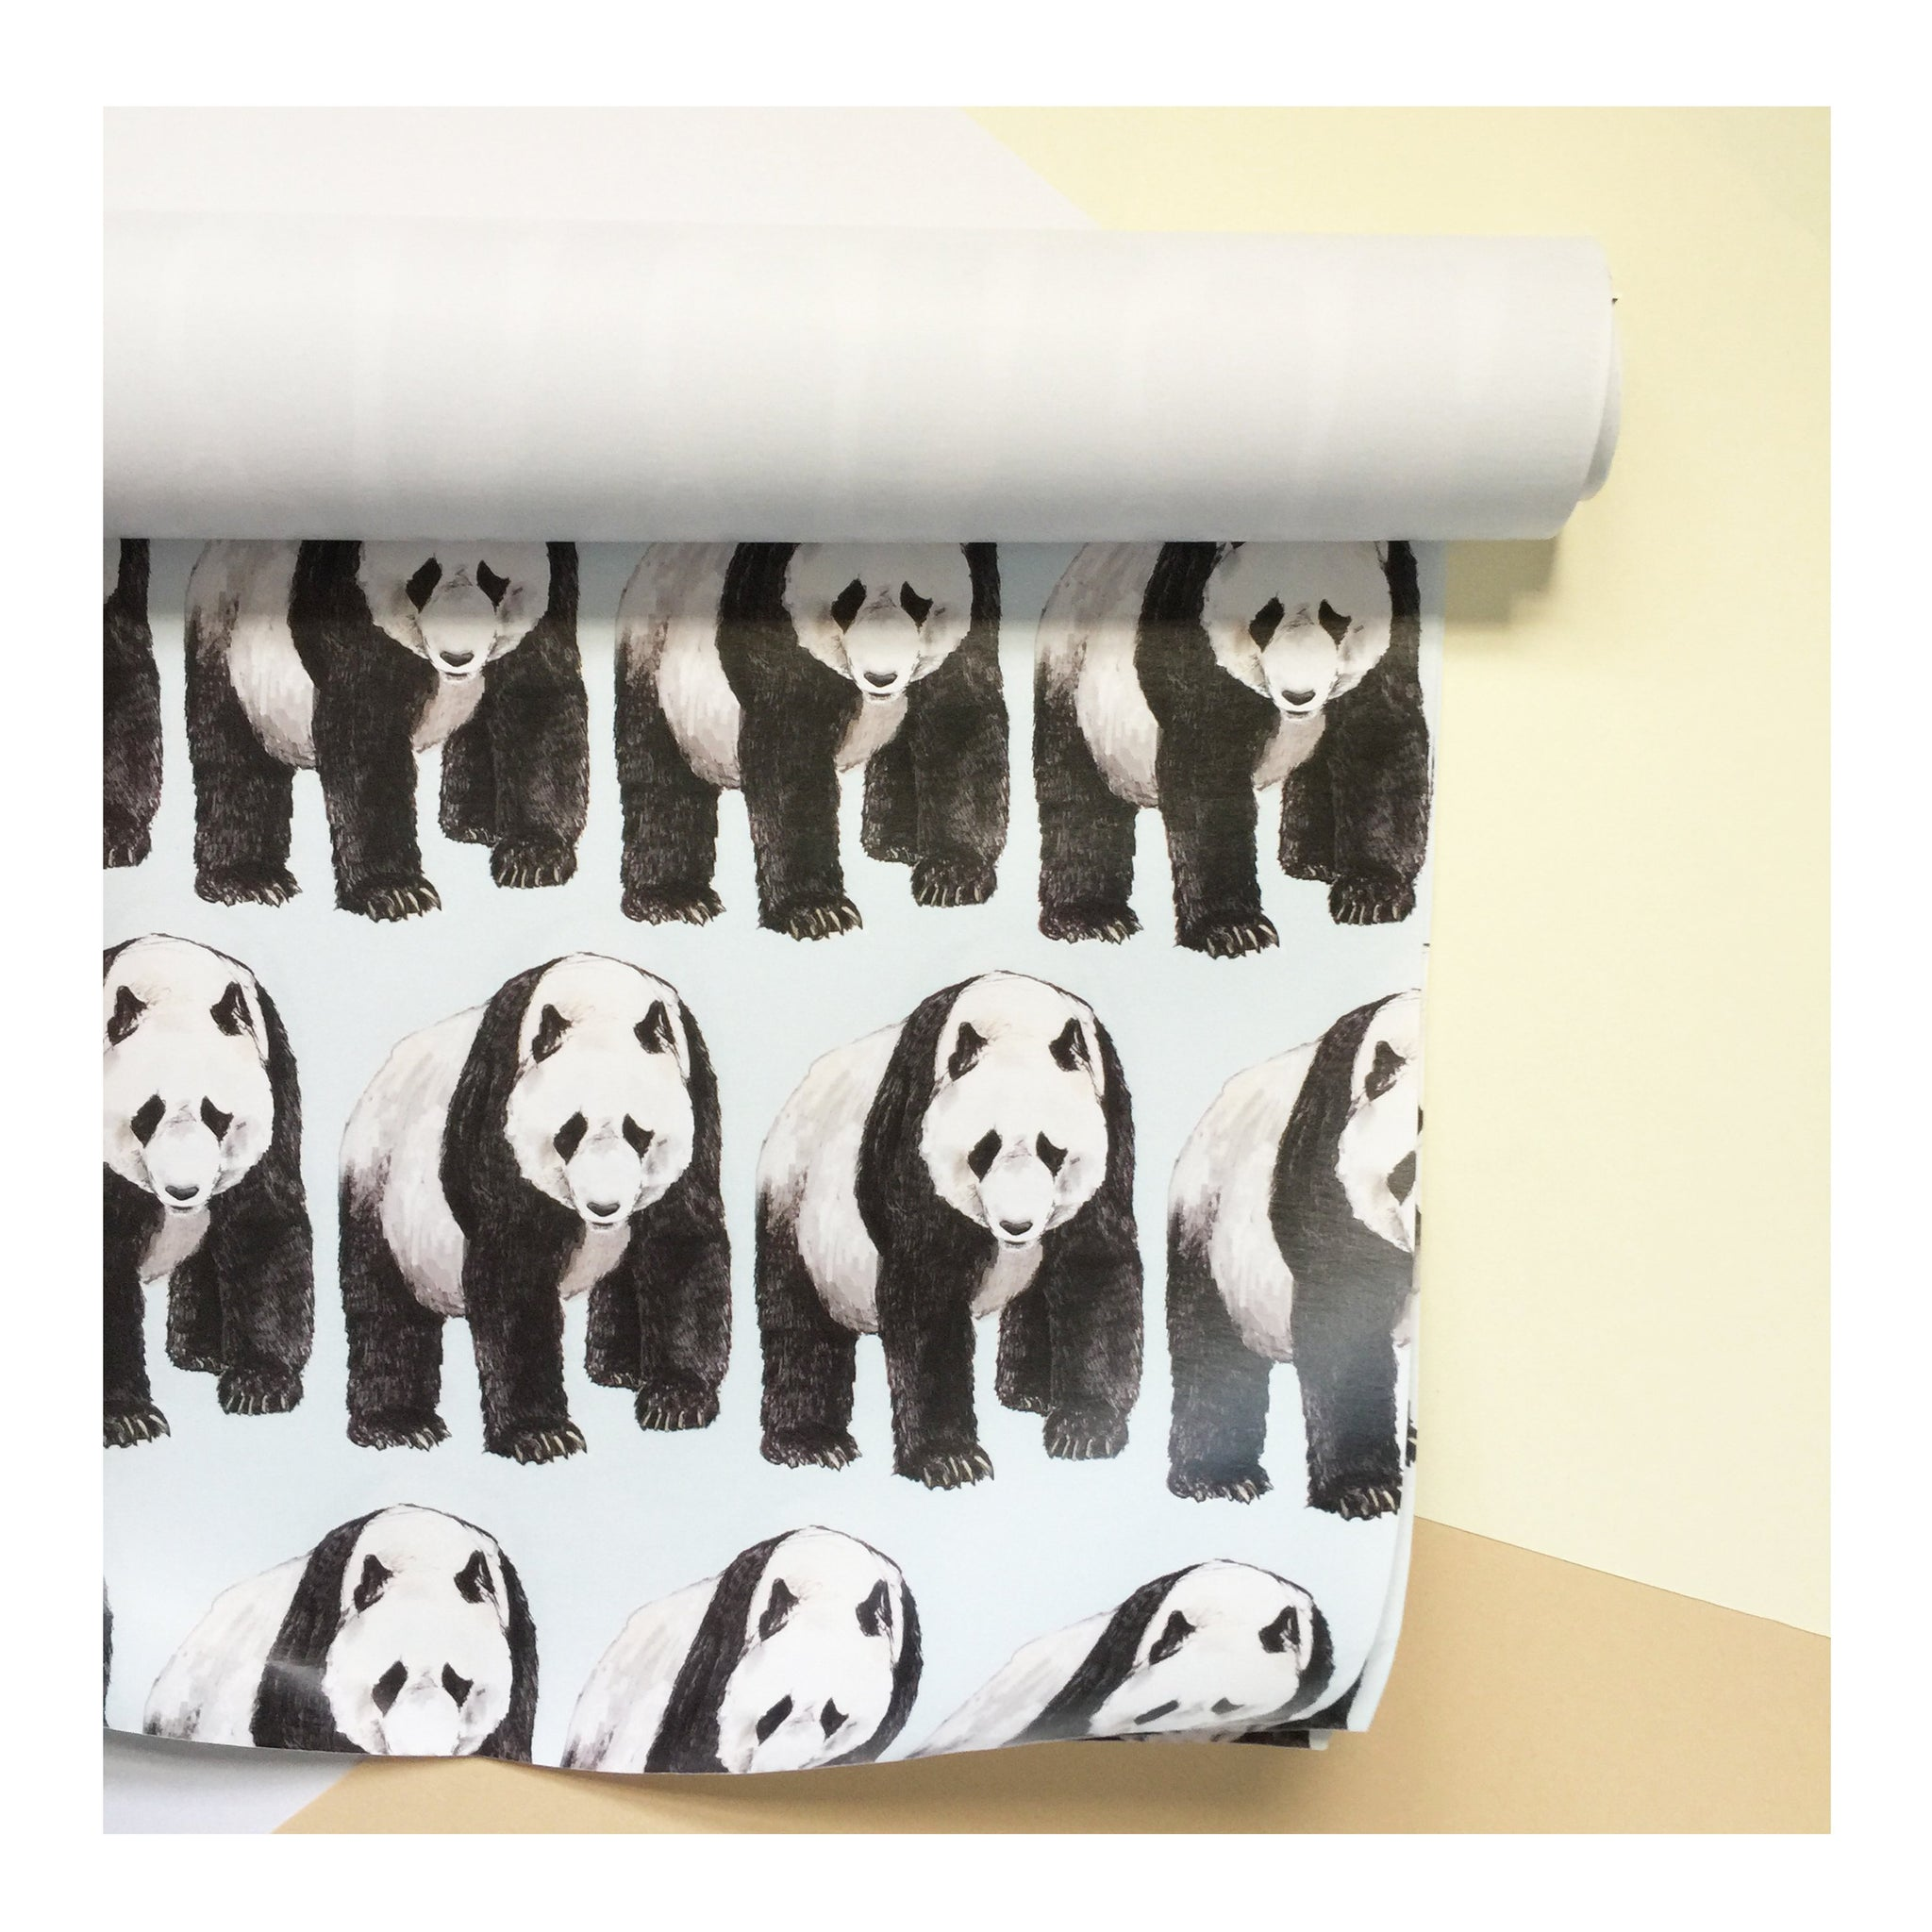 Panda | Gift Wrap | Illustrated Animals - Merri | Illustration | Stationery + Gifts | Manchester